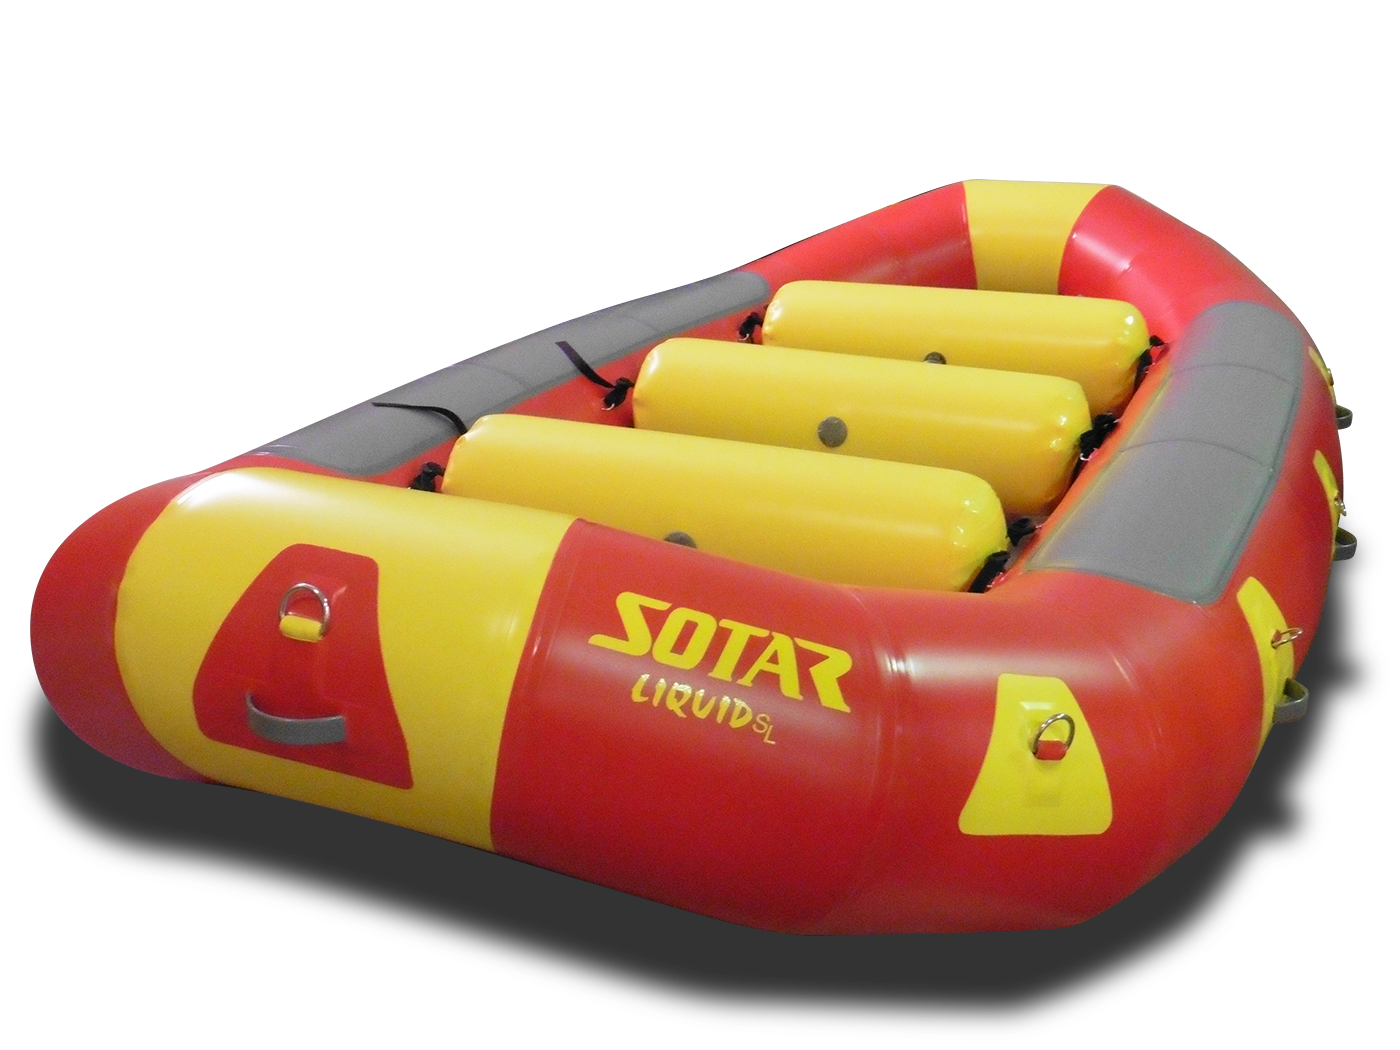 View SOTAR Raft Frame Options Gallery